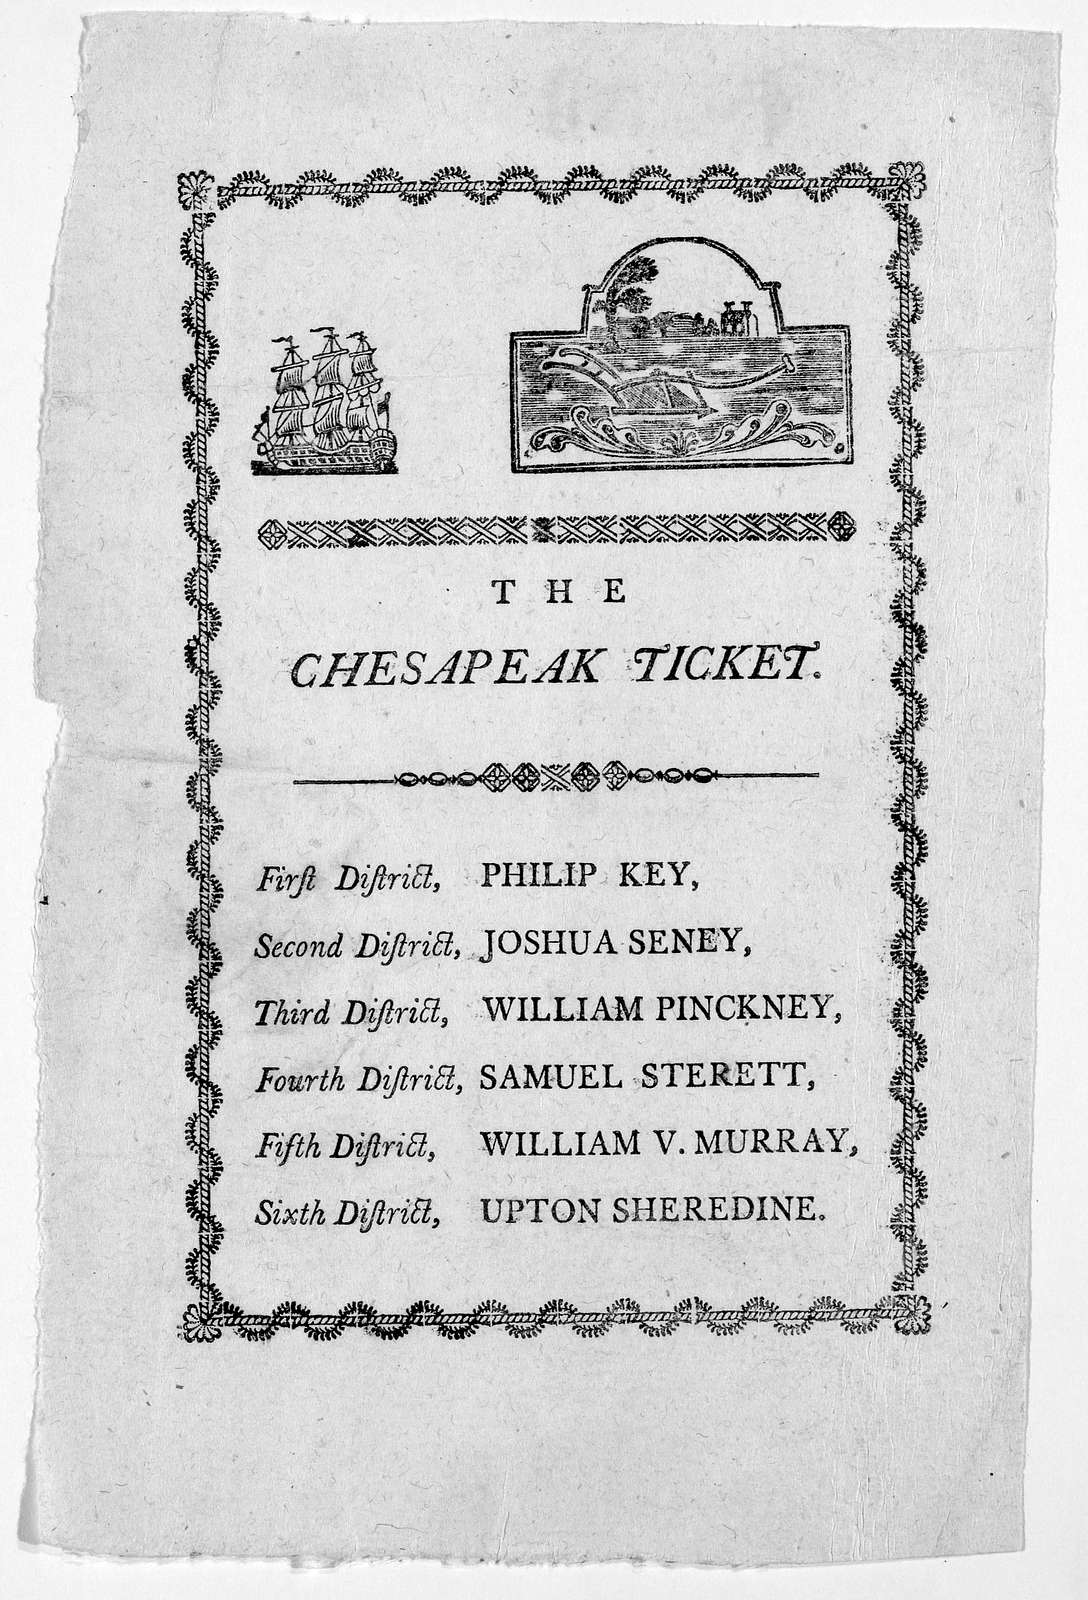 The Chesapeak ticket. First distridt. Philip Key. Second district. Joshua Seney, Third district William Pinckney. Fourth district Samuel Sterett. Fifth district, William V. Murray. Sixth district. Upton Sheredine. [1791?]